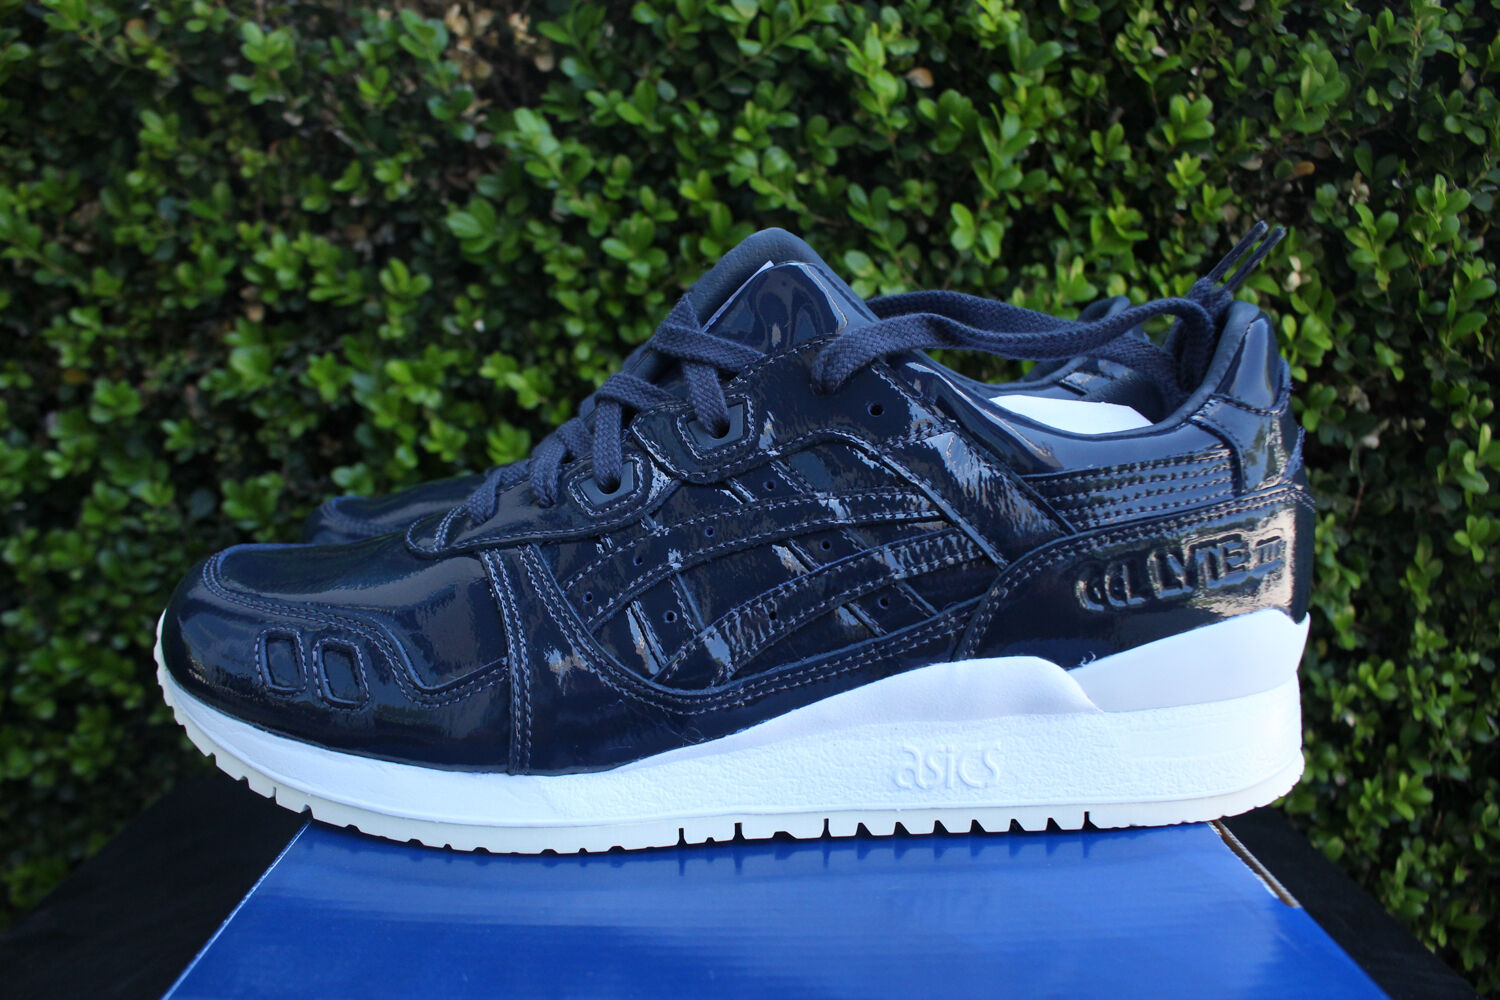 ASICS GEL LYTE III 3 SZ 8.5 PATENT LEATHER INDIA INK H7H1L 5858